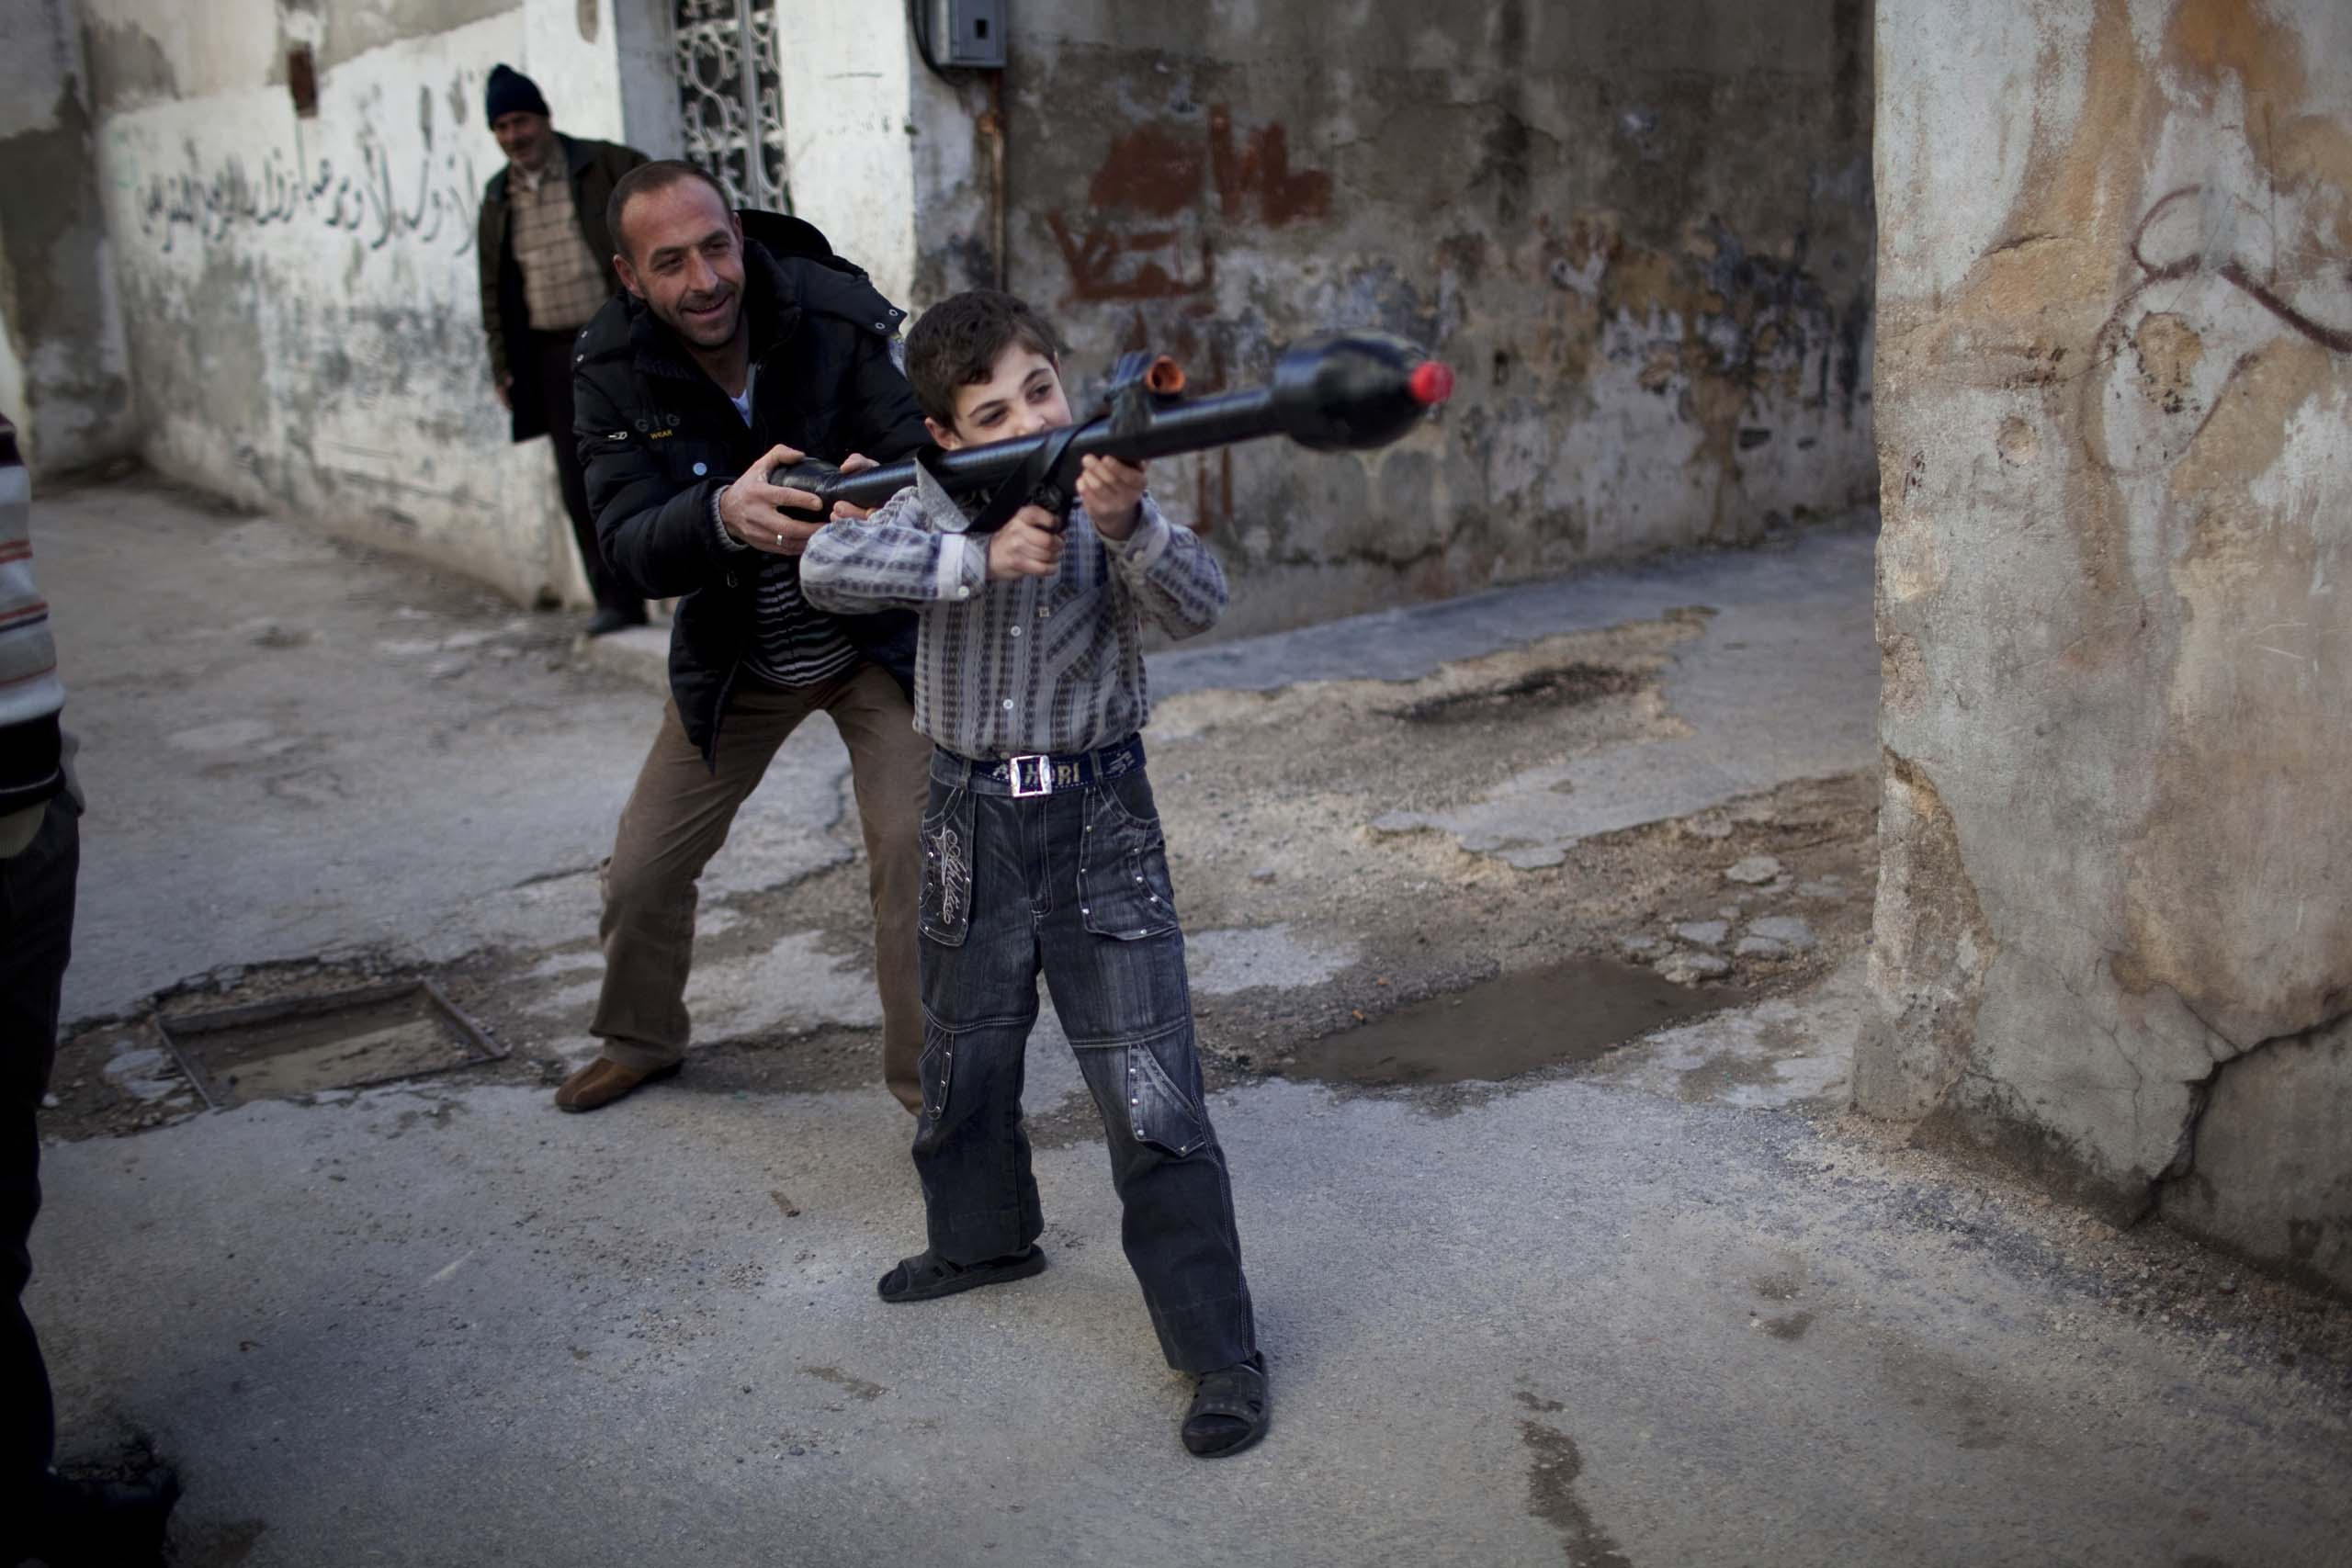 A man teaches a child to use a toy grenade launcher in Idlib, Syria.